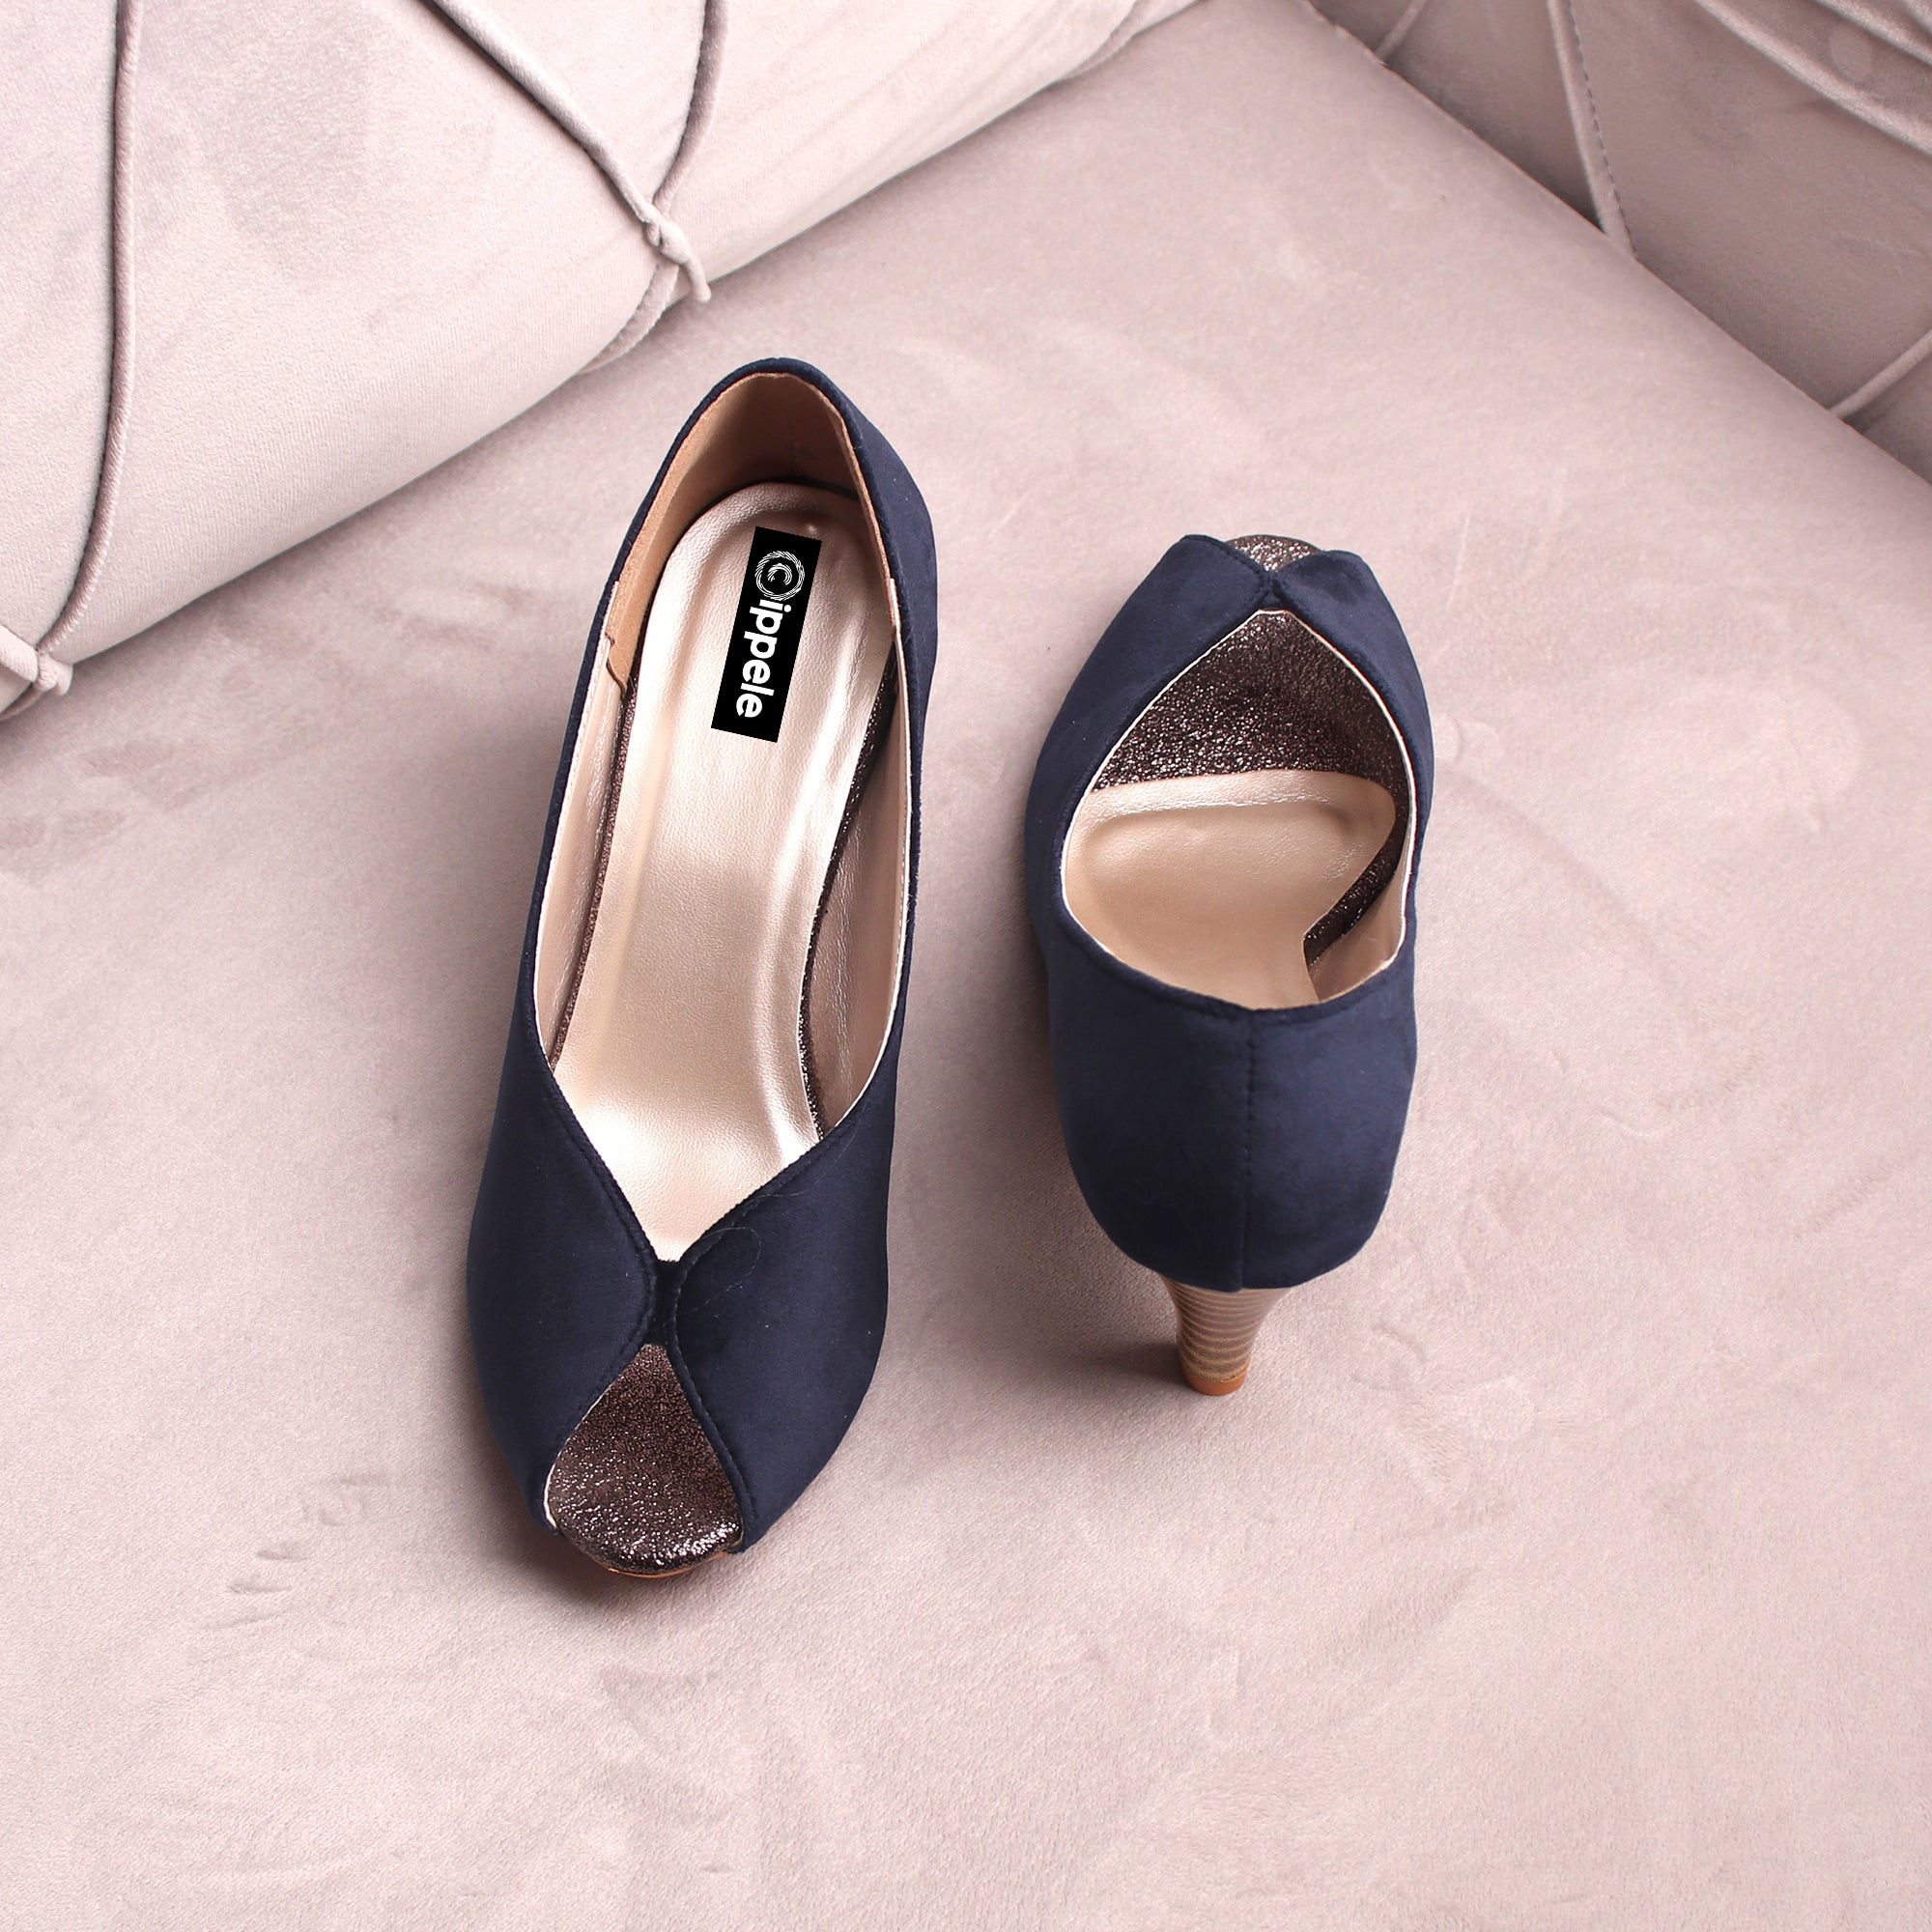 The Stylish Sneaky Blue Heels